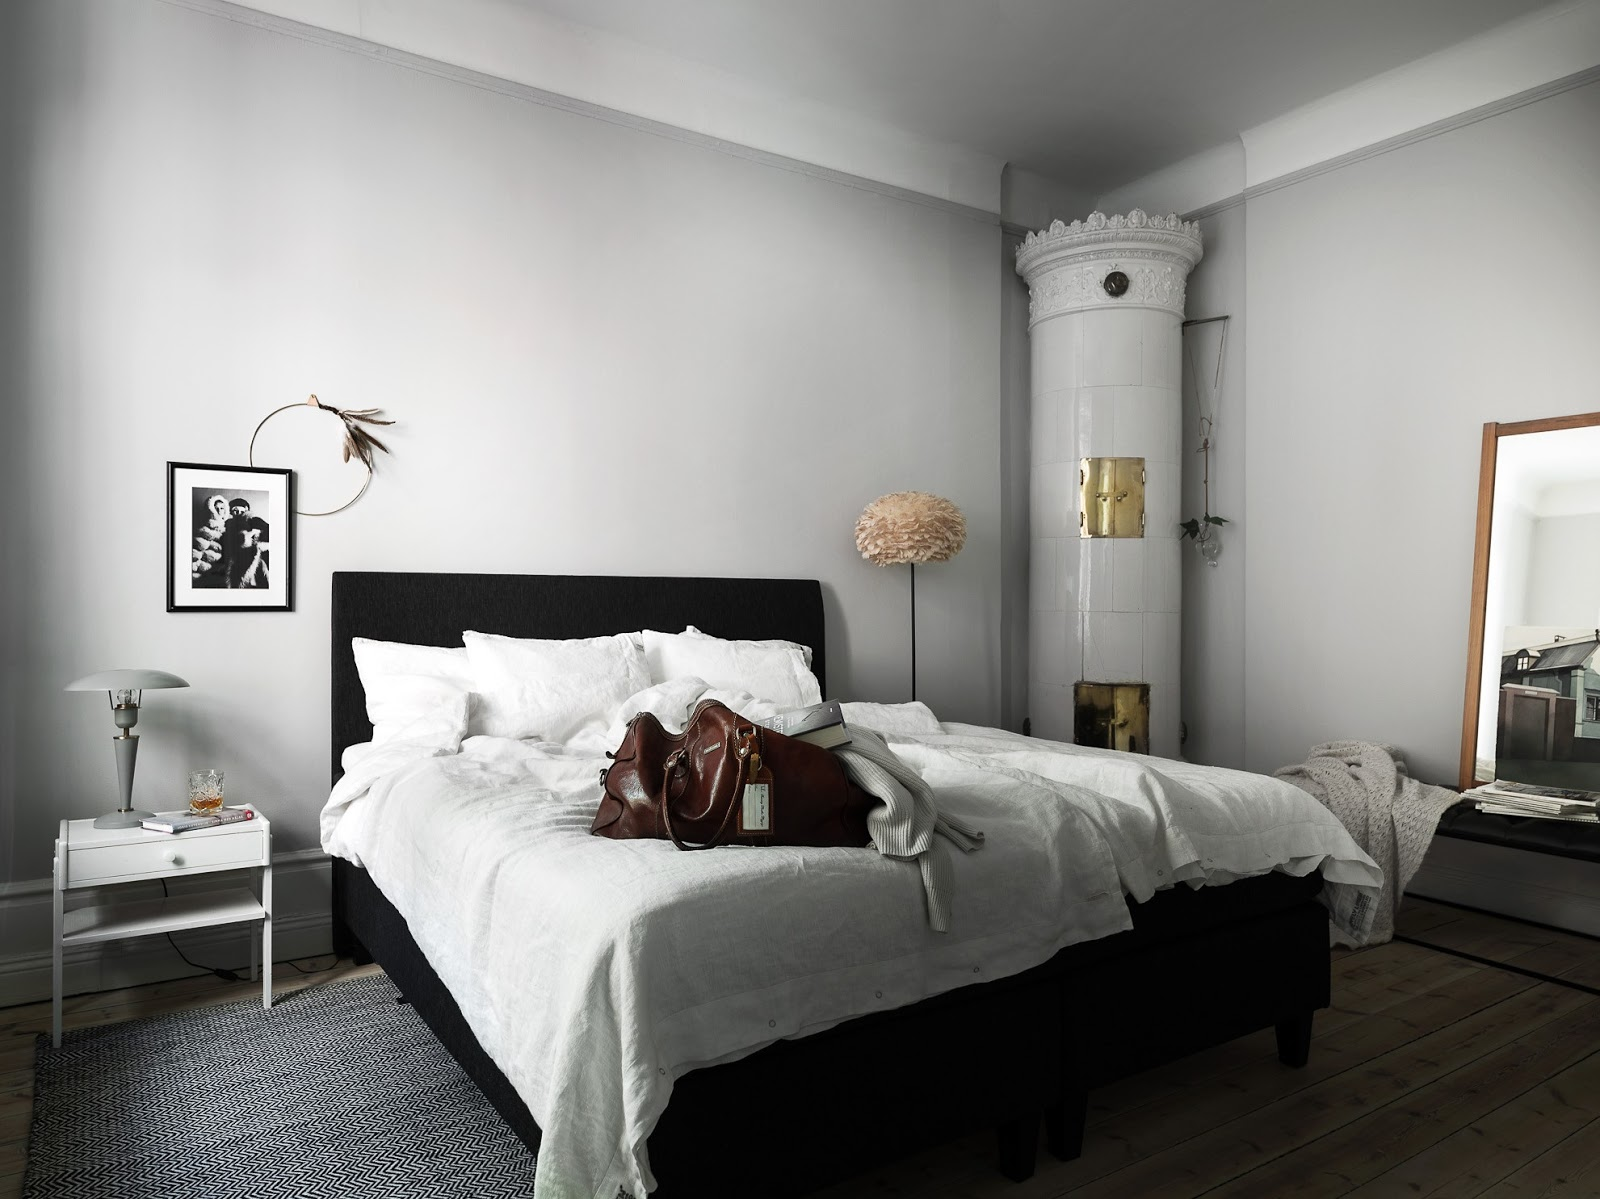 high ceilings apartment with wooden floors, white painted walls, danish design, fireplace, bedroom